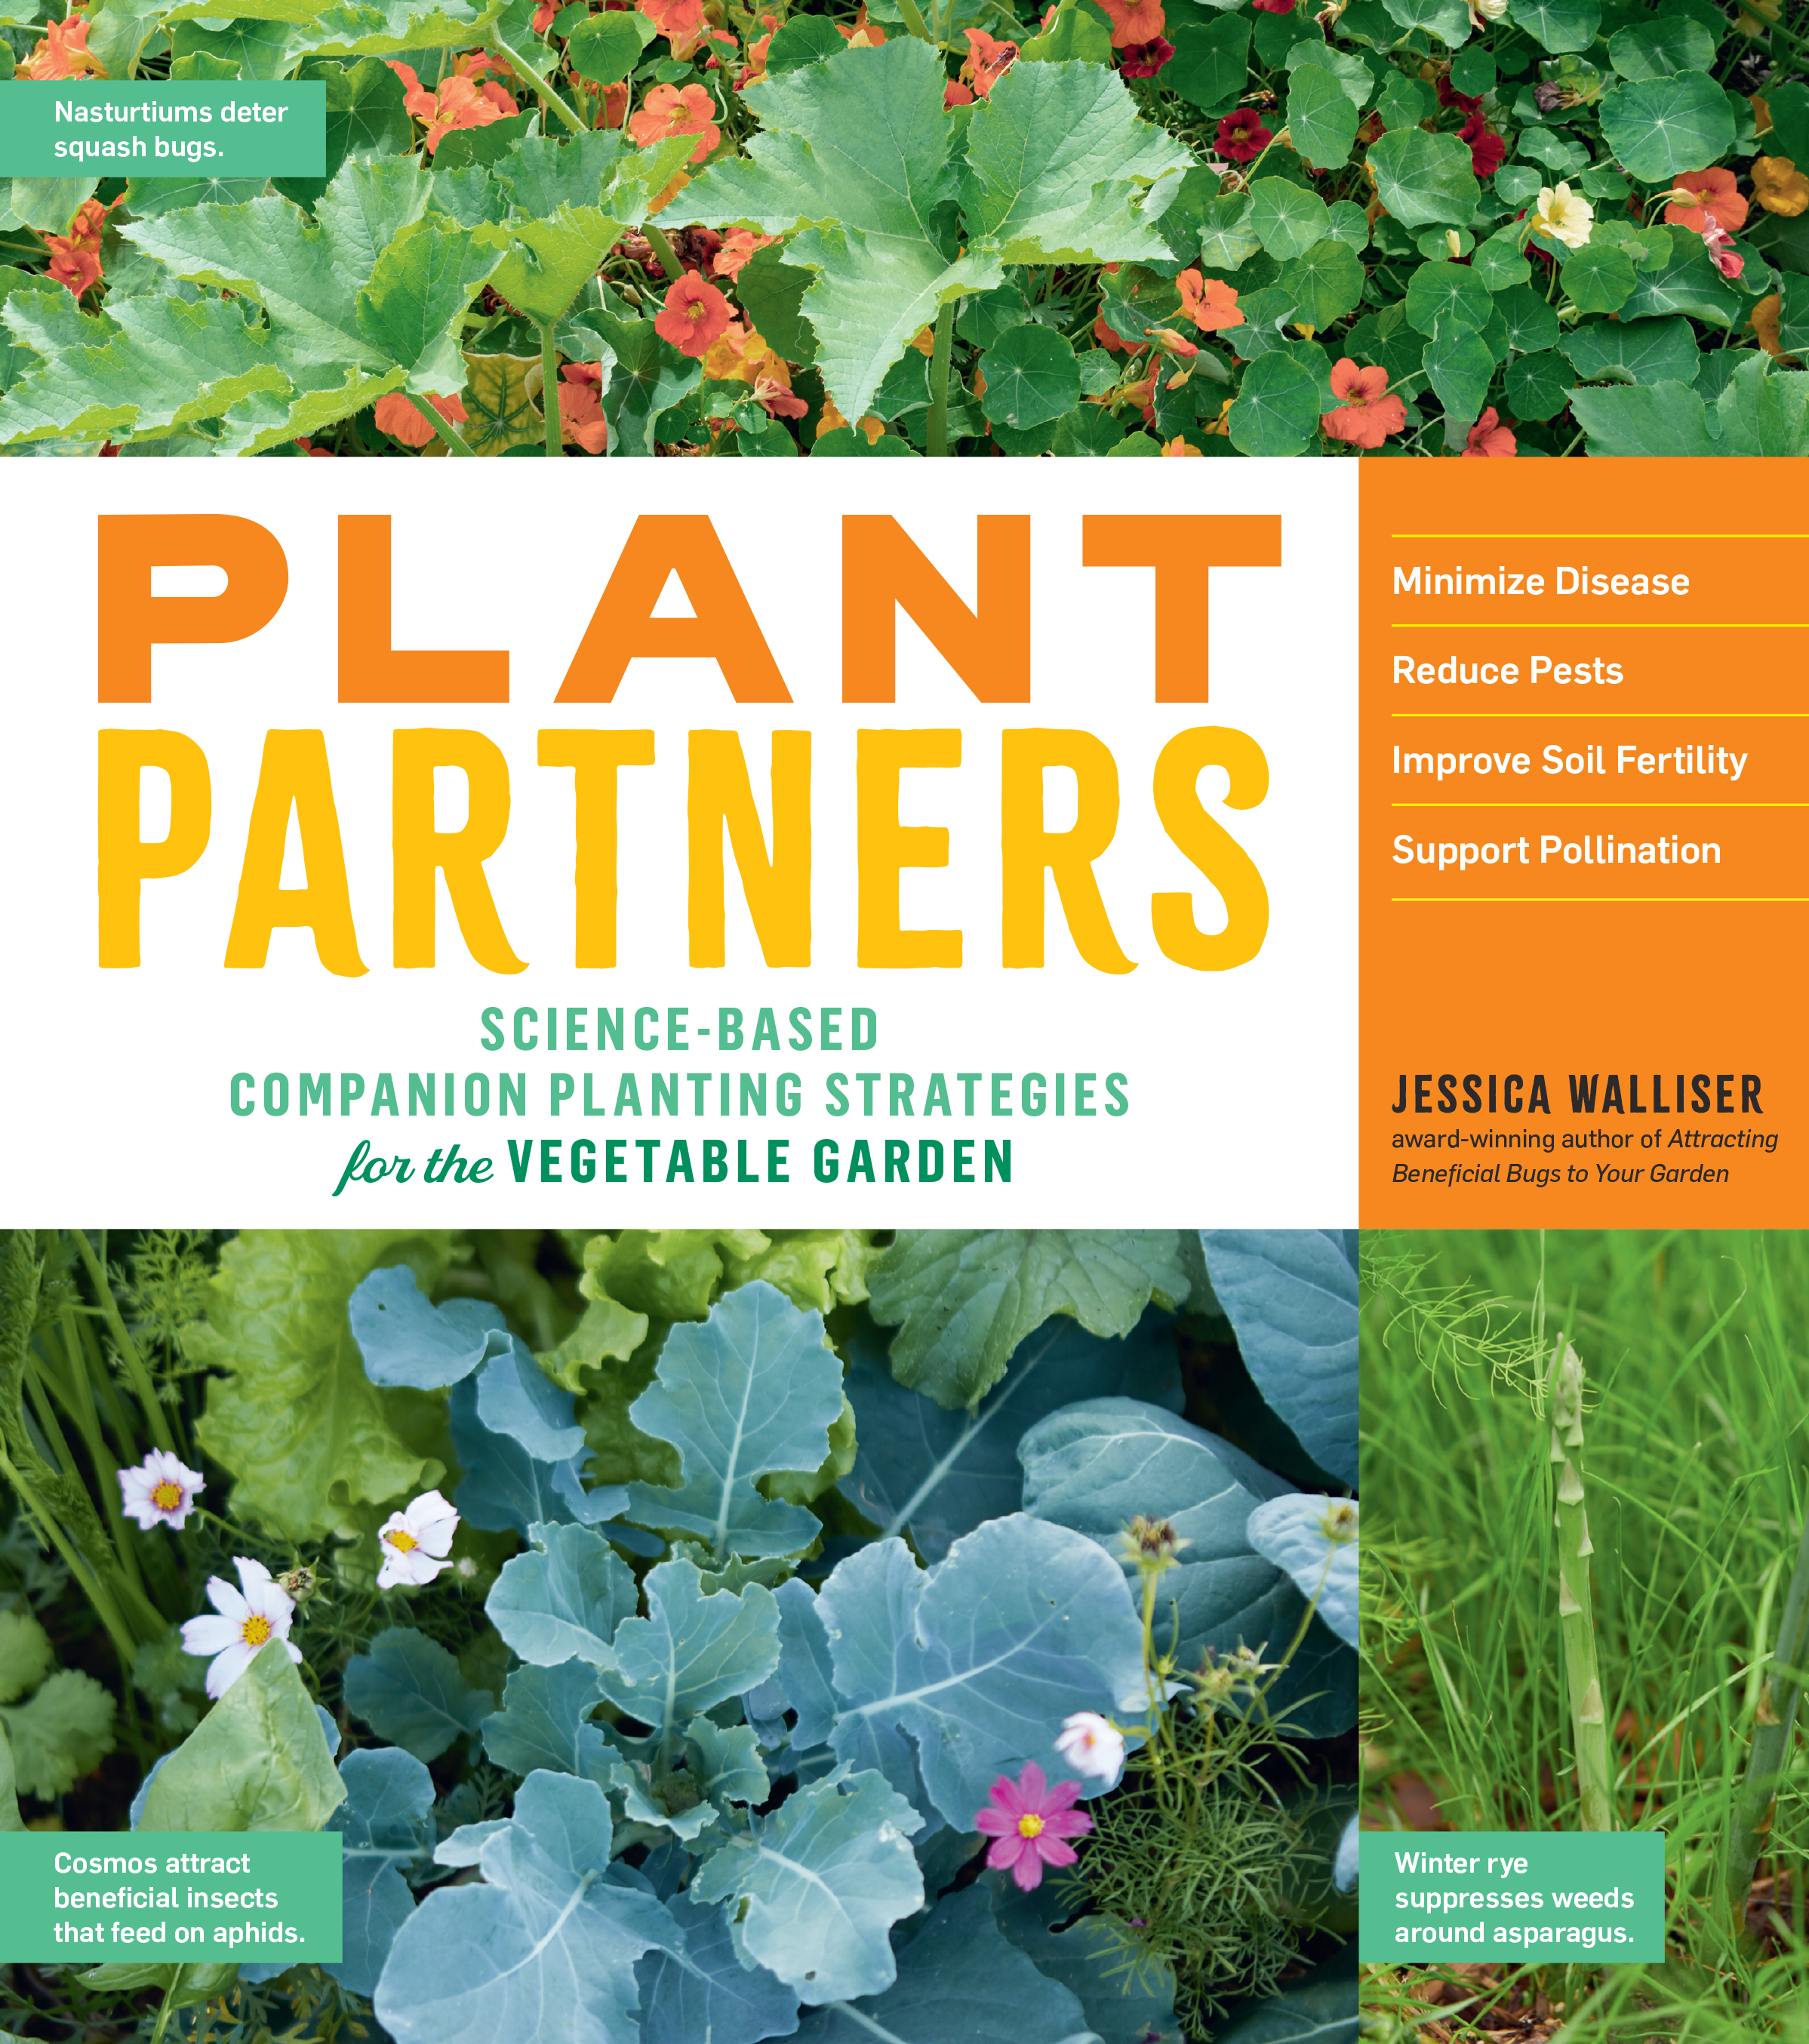 Plant Partners Science-Based Companion Planting Strategies for the Vegetable Garden - Jessica Walliser